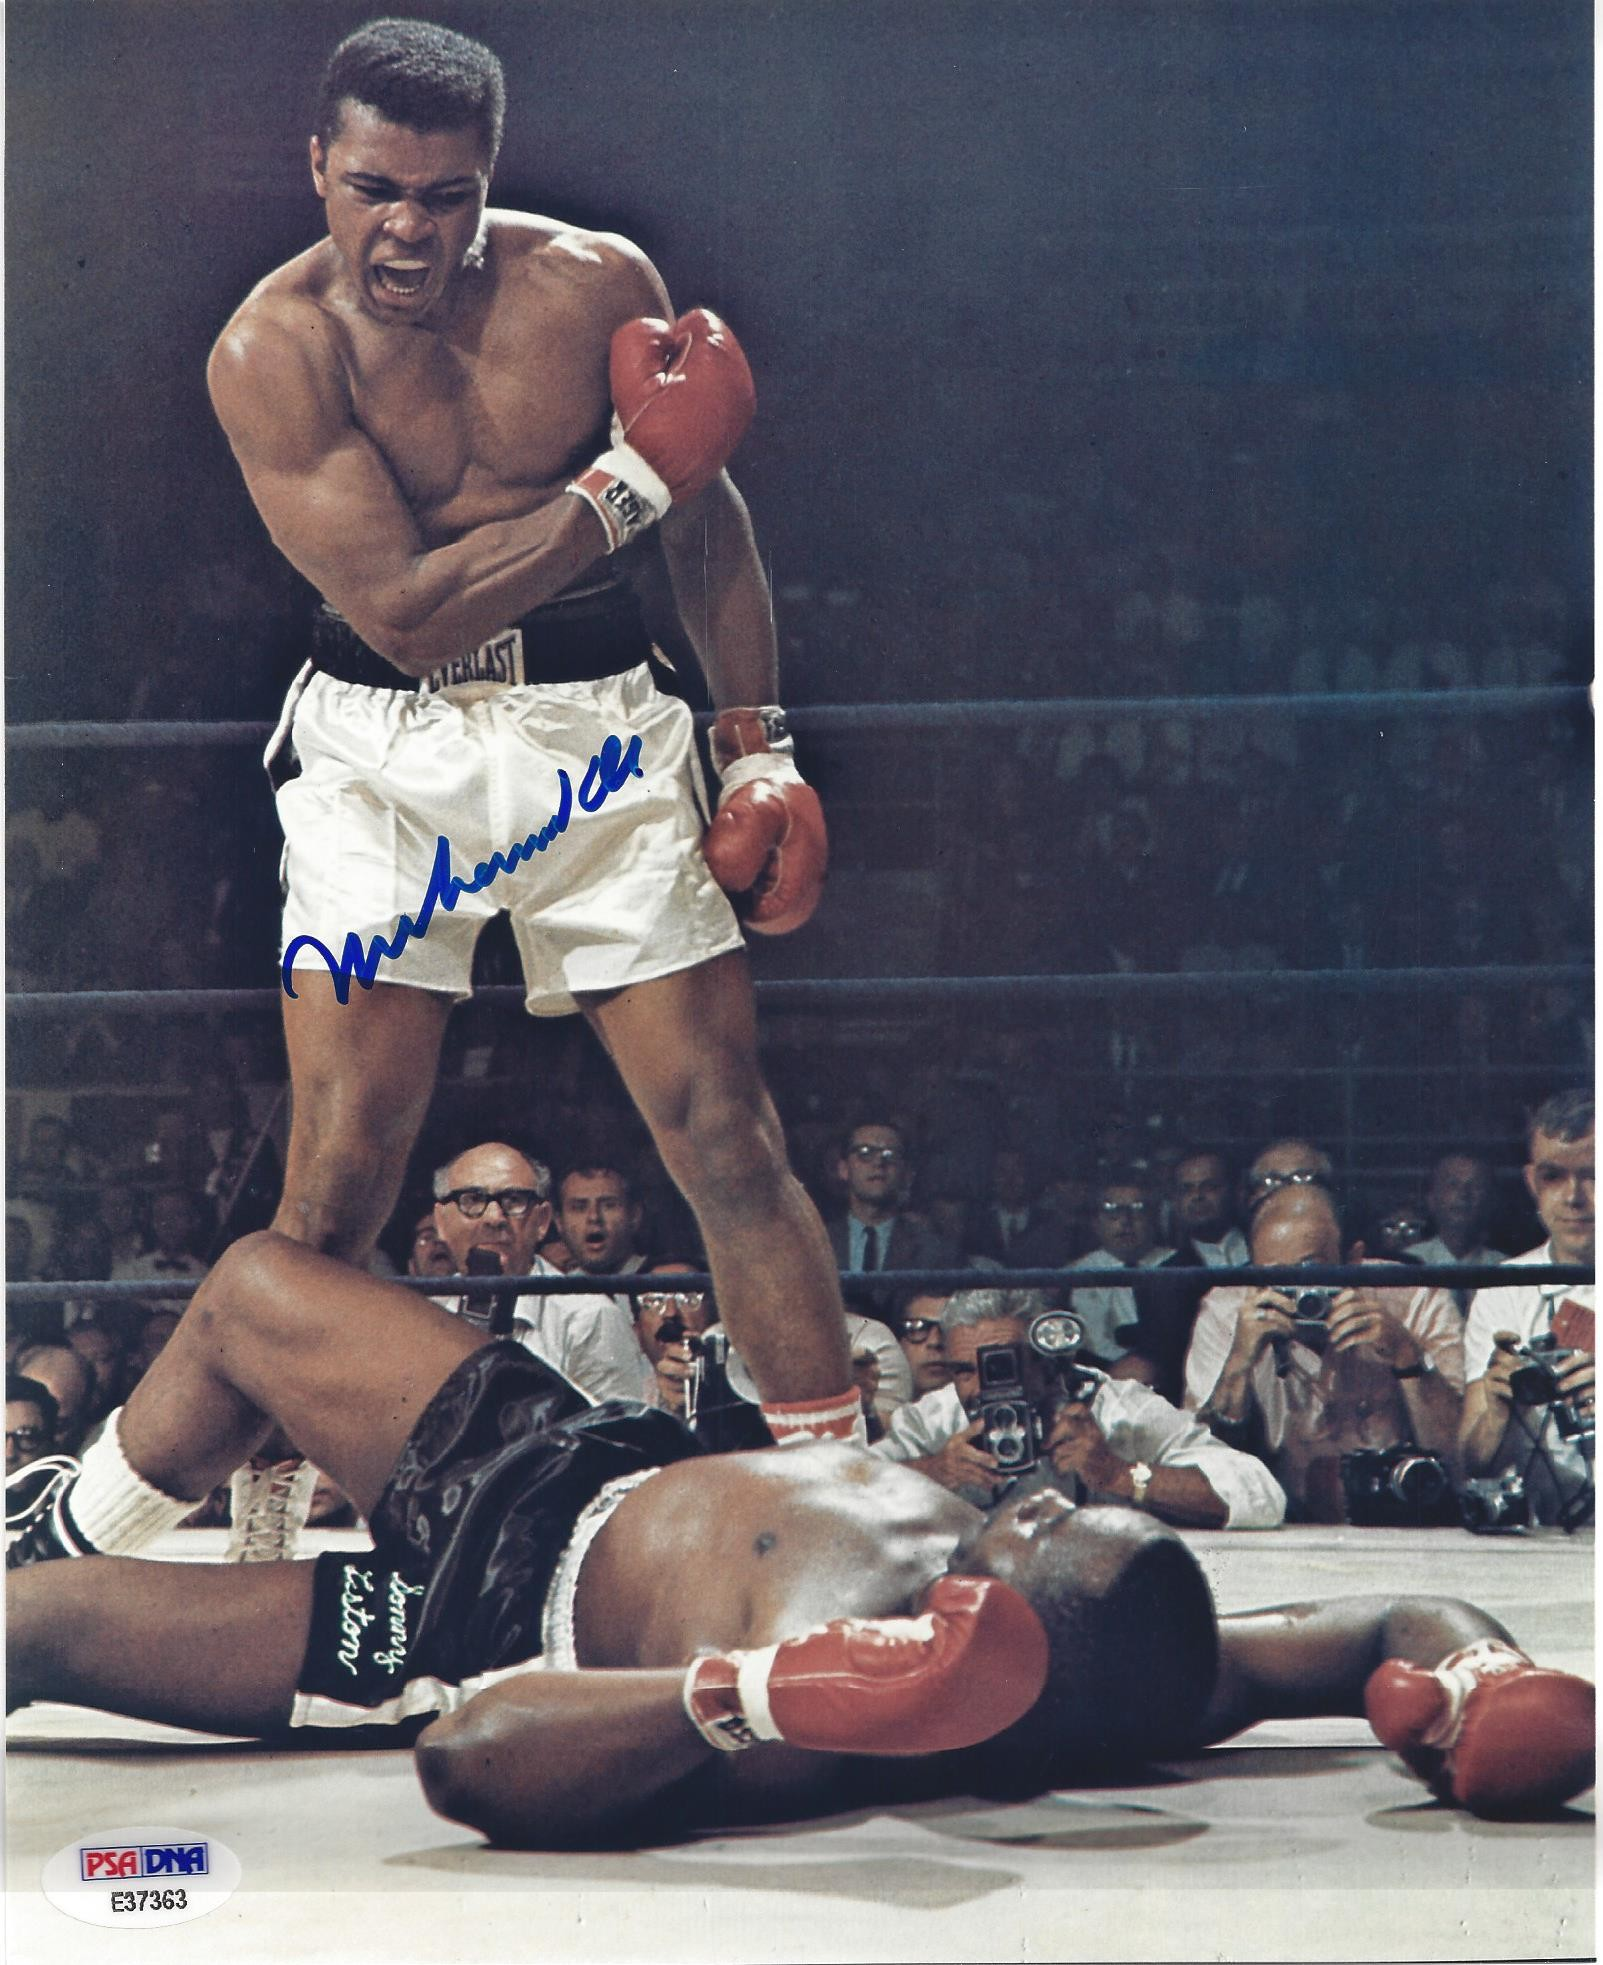 Signed 8x10 of Muhammad Ali after knocking down Sonny Liston in the ring